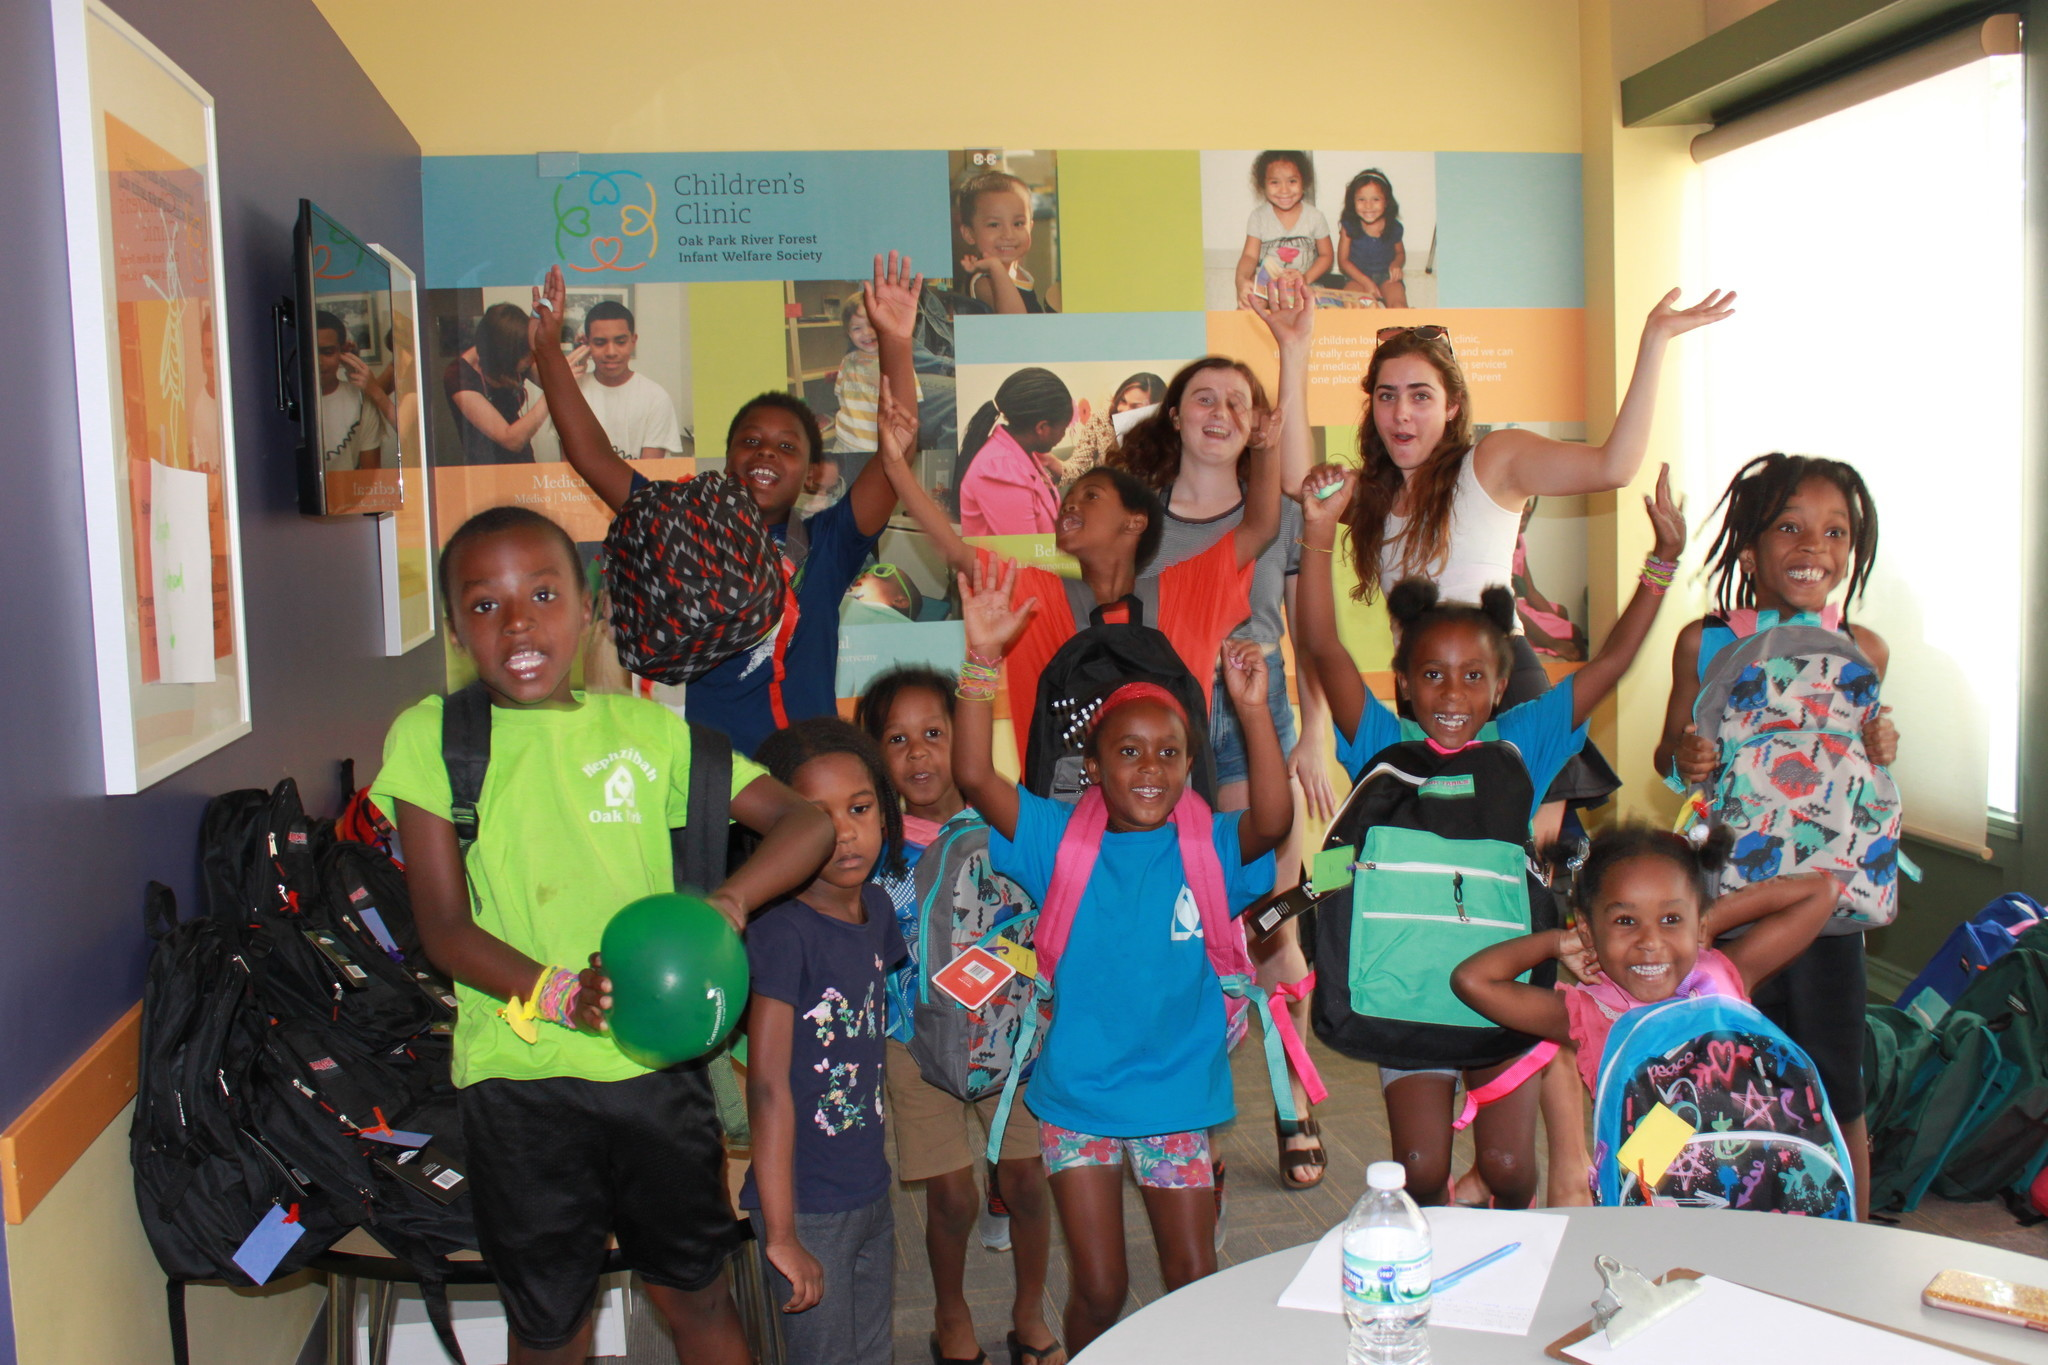 Kids Enjoy Fun Healthy Activities And Get A Free Backpack Filled